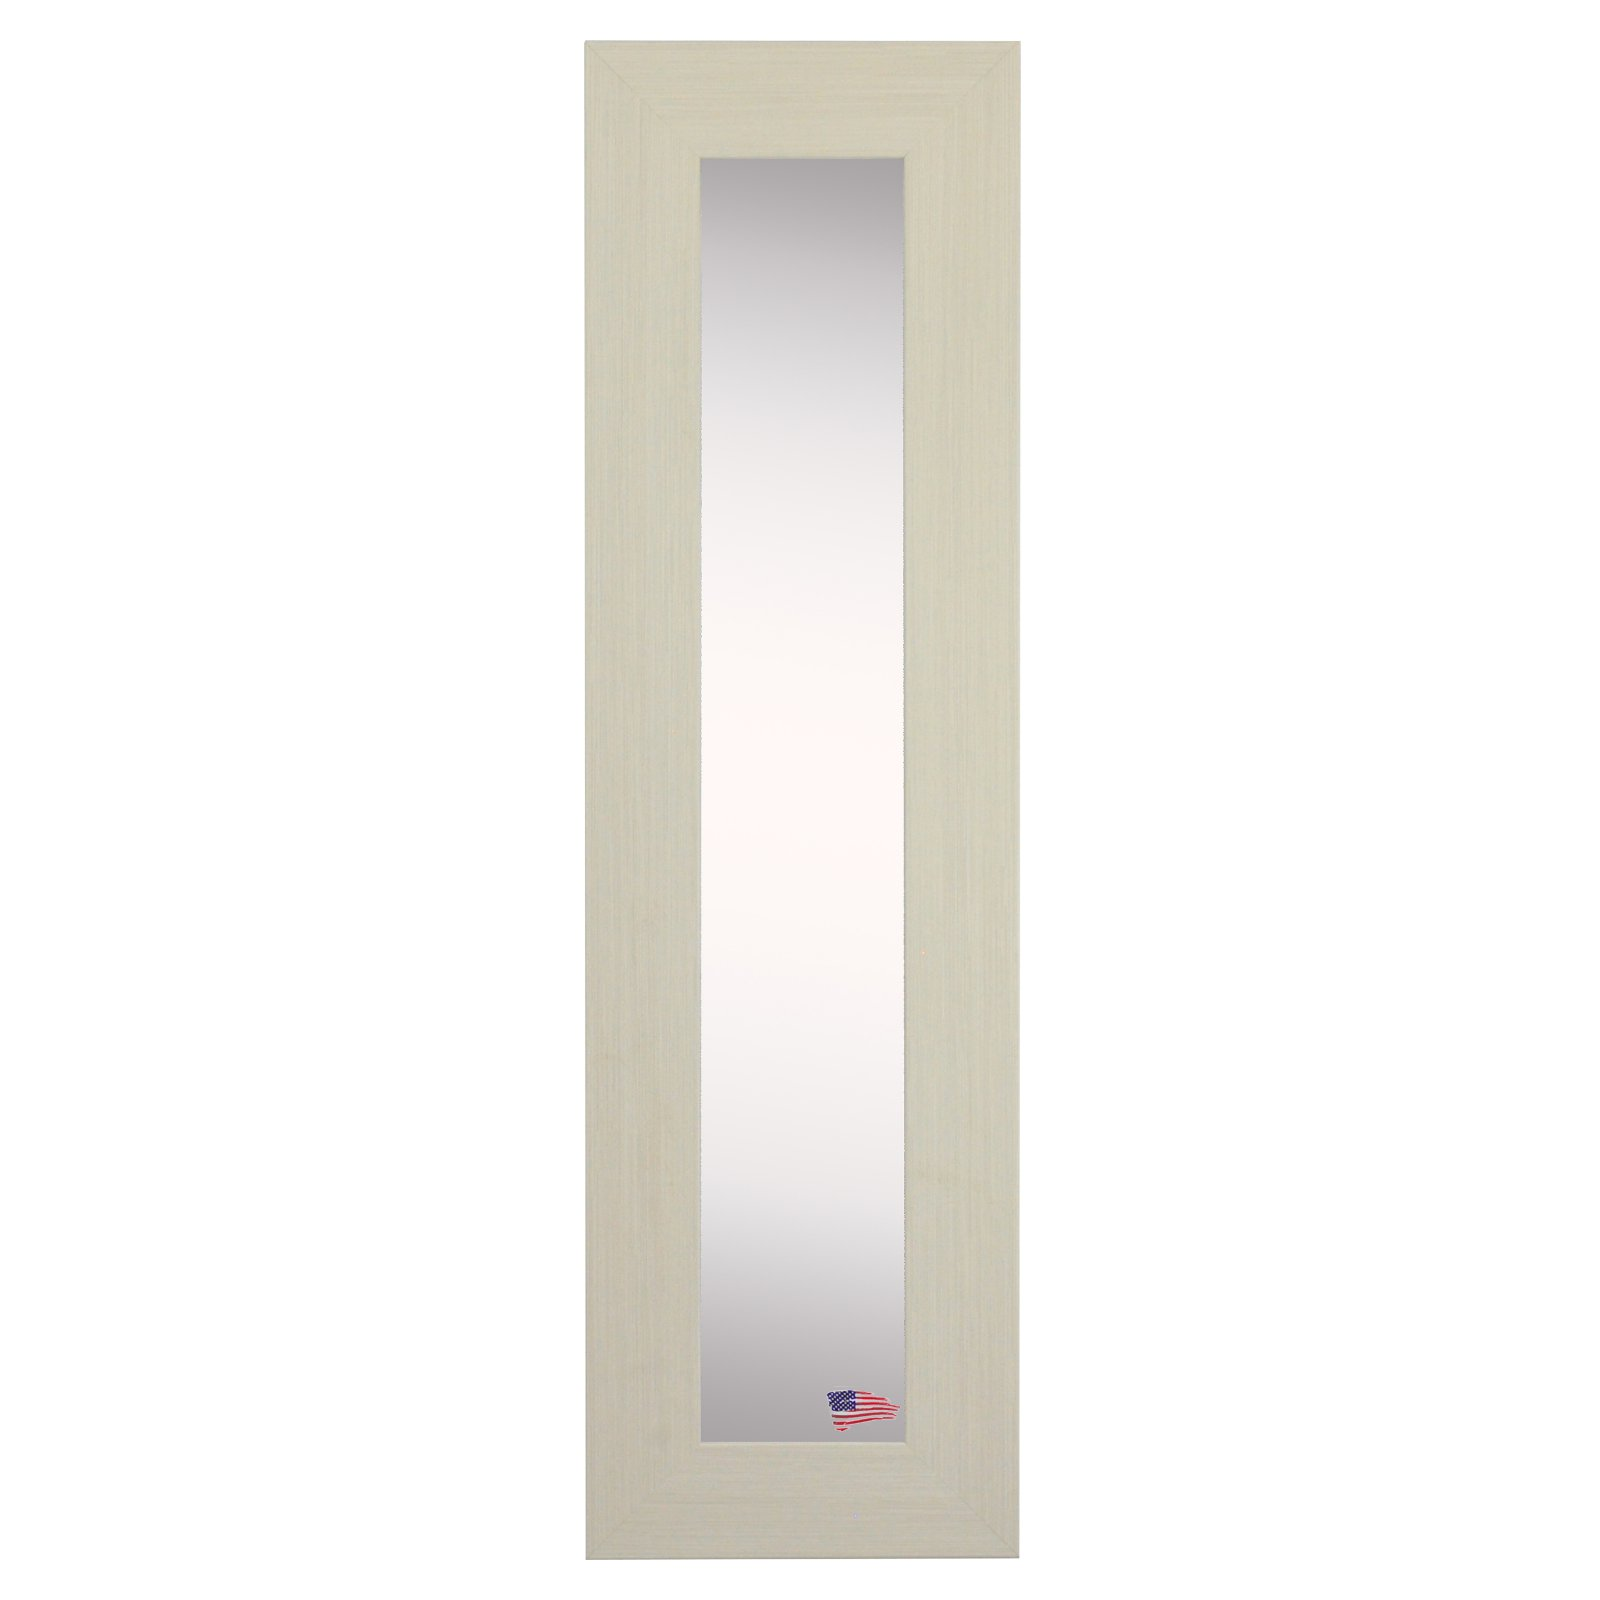 Rayne Mirrors Arctic Panel Wall Mirror Set of 3 by Rayne Mirrors